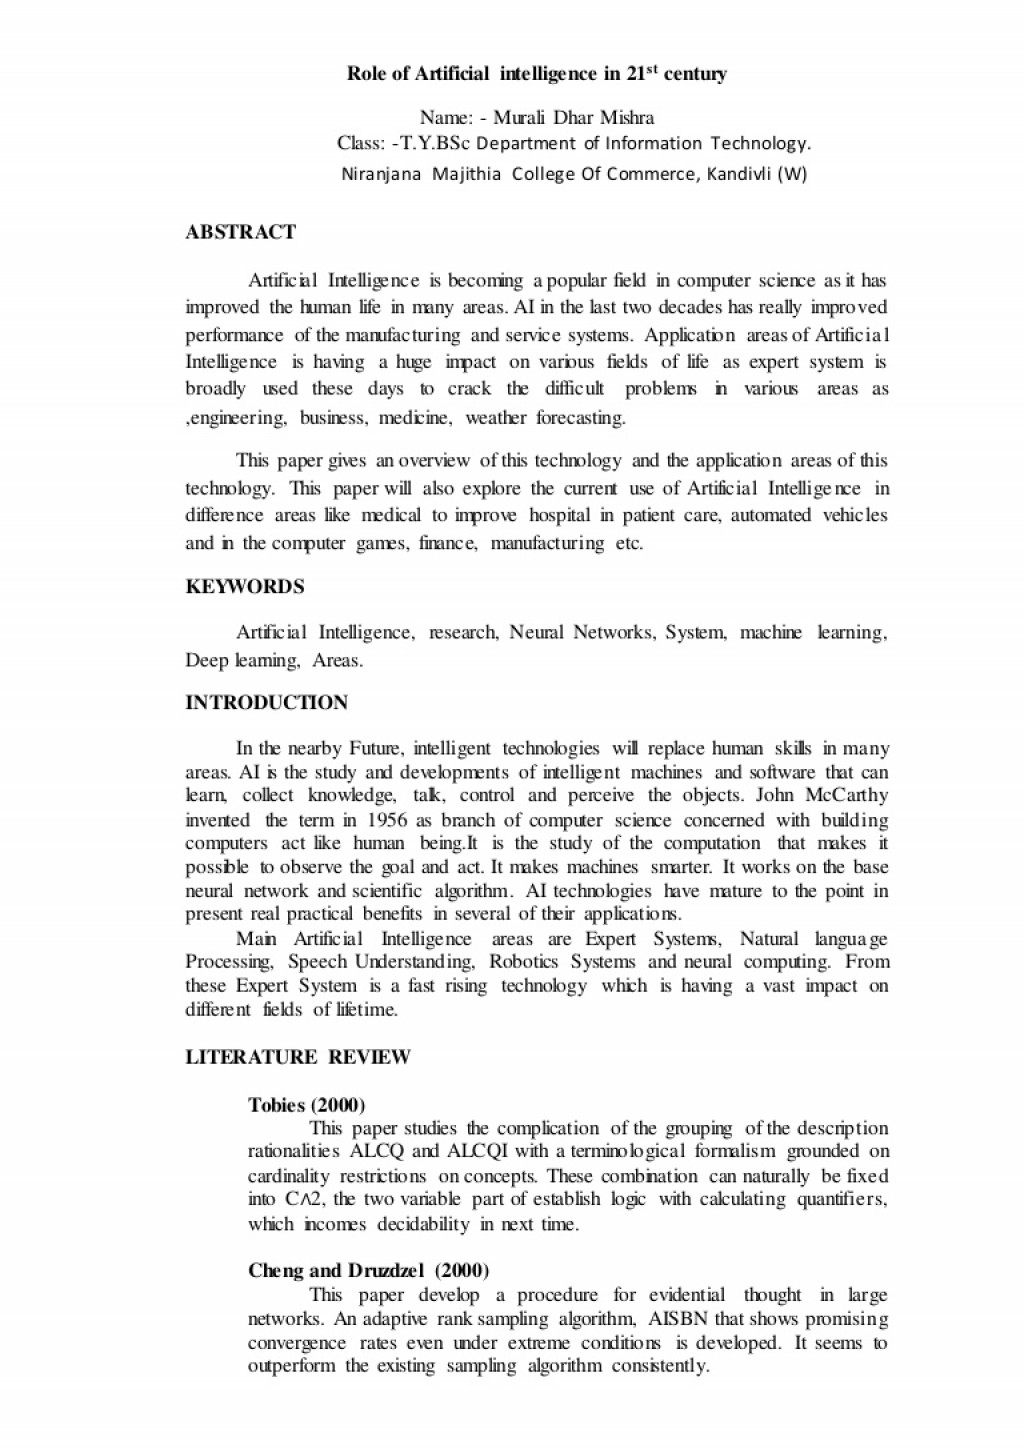 006 Roleofartificialintelligencein21stcentury Thumbnail Research Paper Artificial Phenomenal Intelligence 2017 Latest On Pdf Large